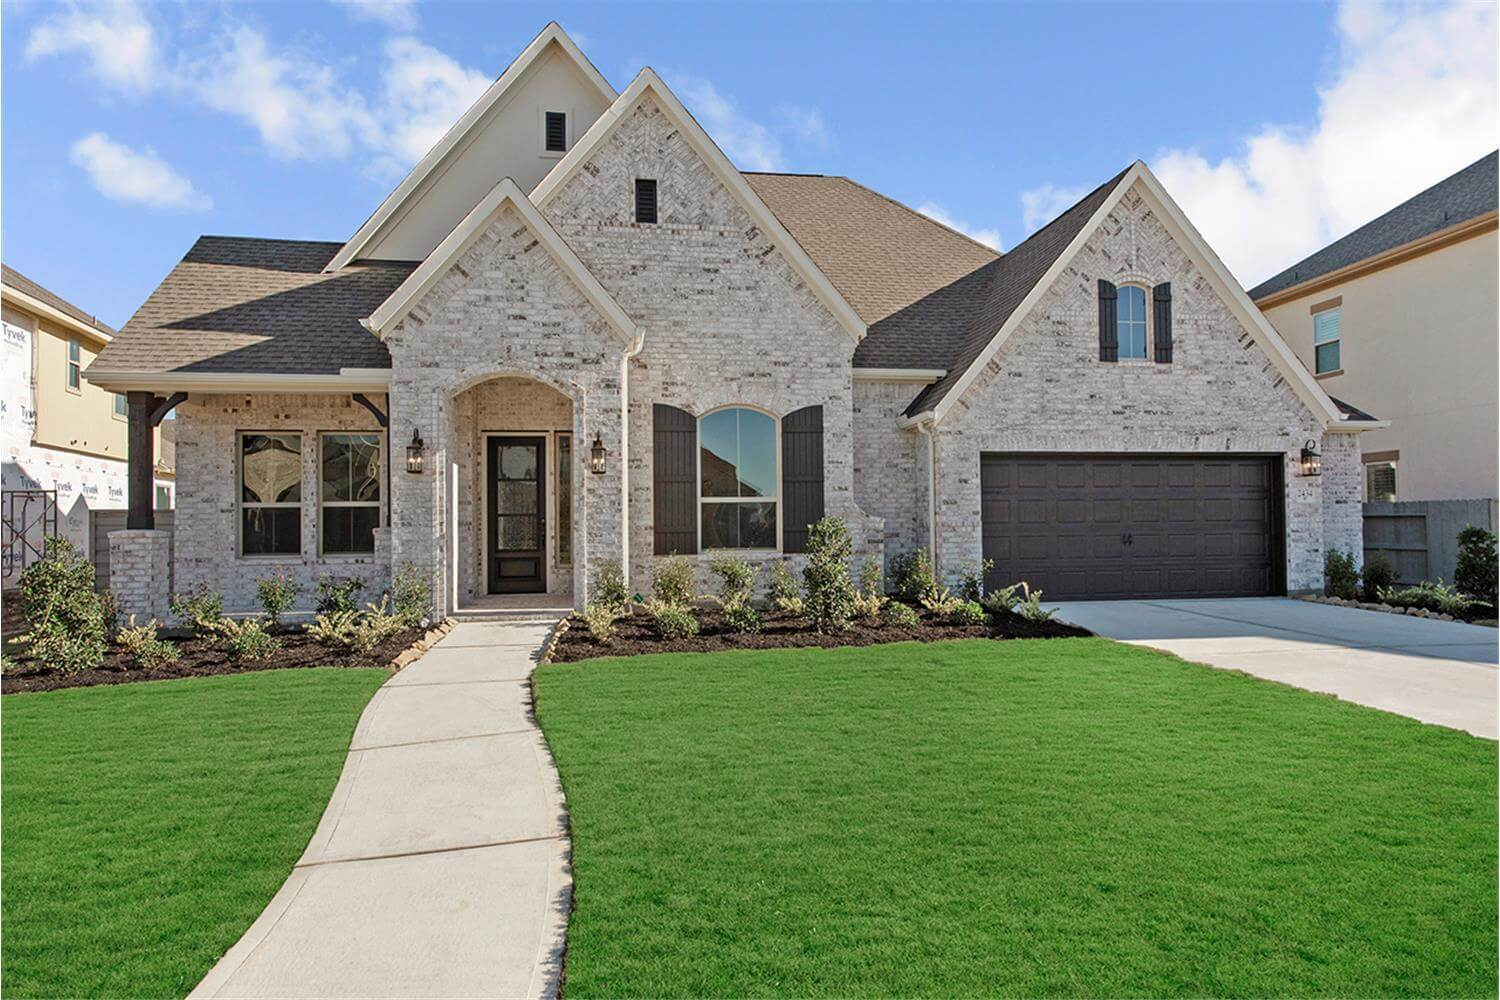 Single Family for Active at Design 6876 2434 Piney Creek Dr Manvel, Texas 77578 United States